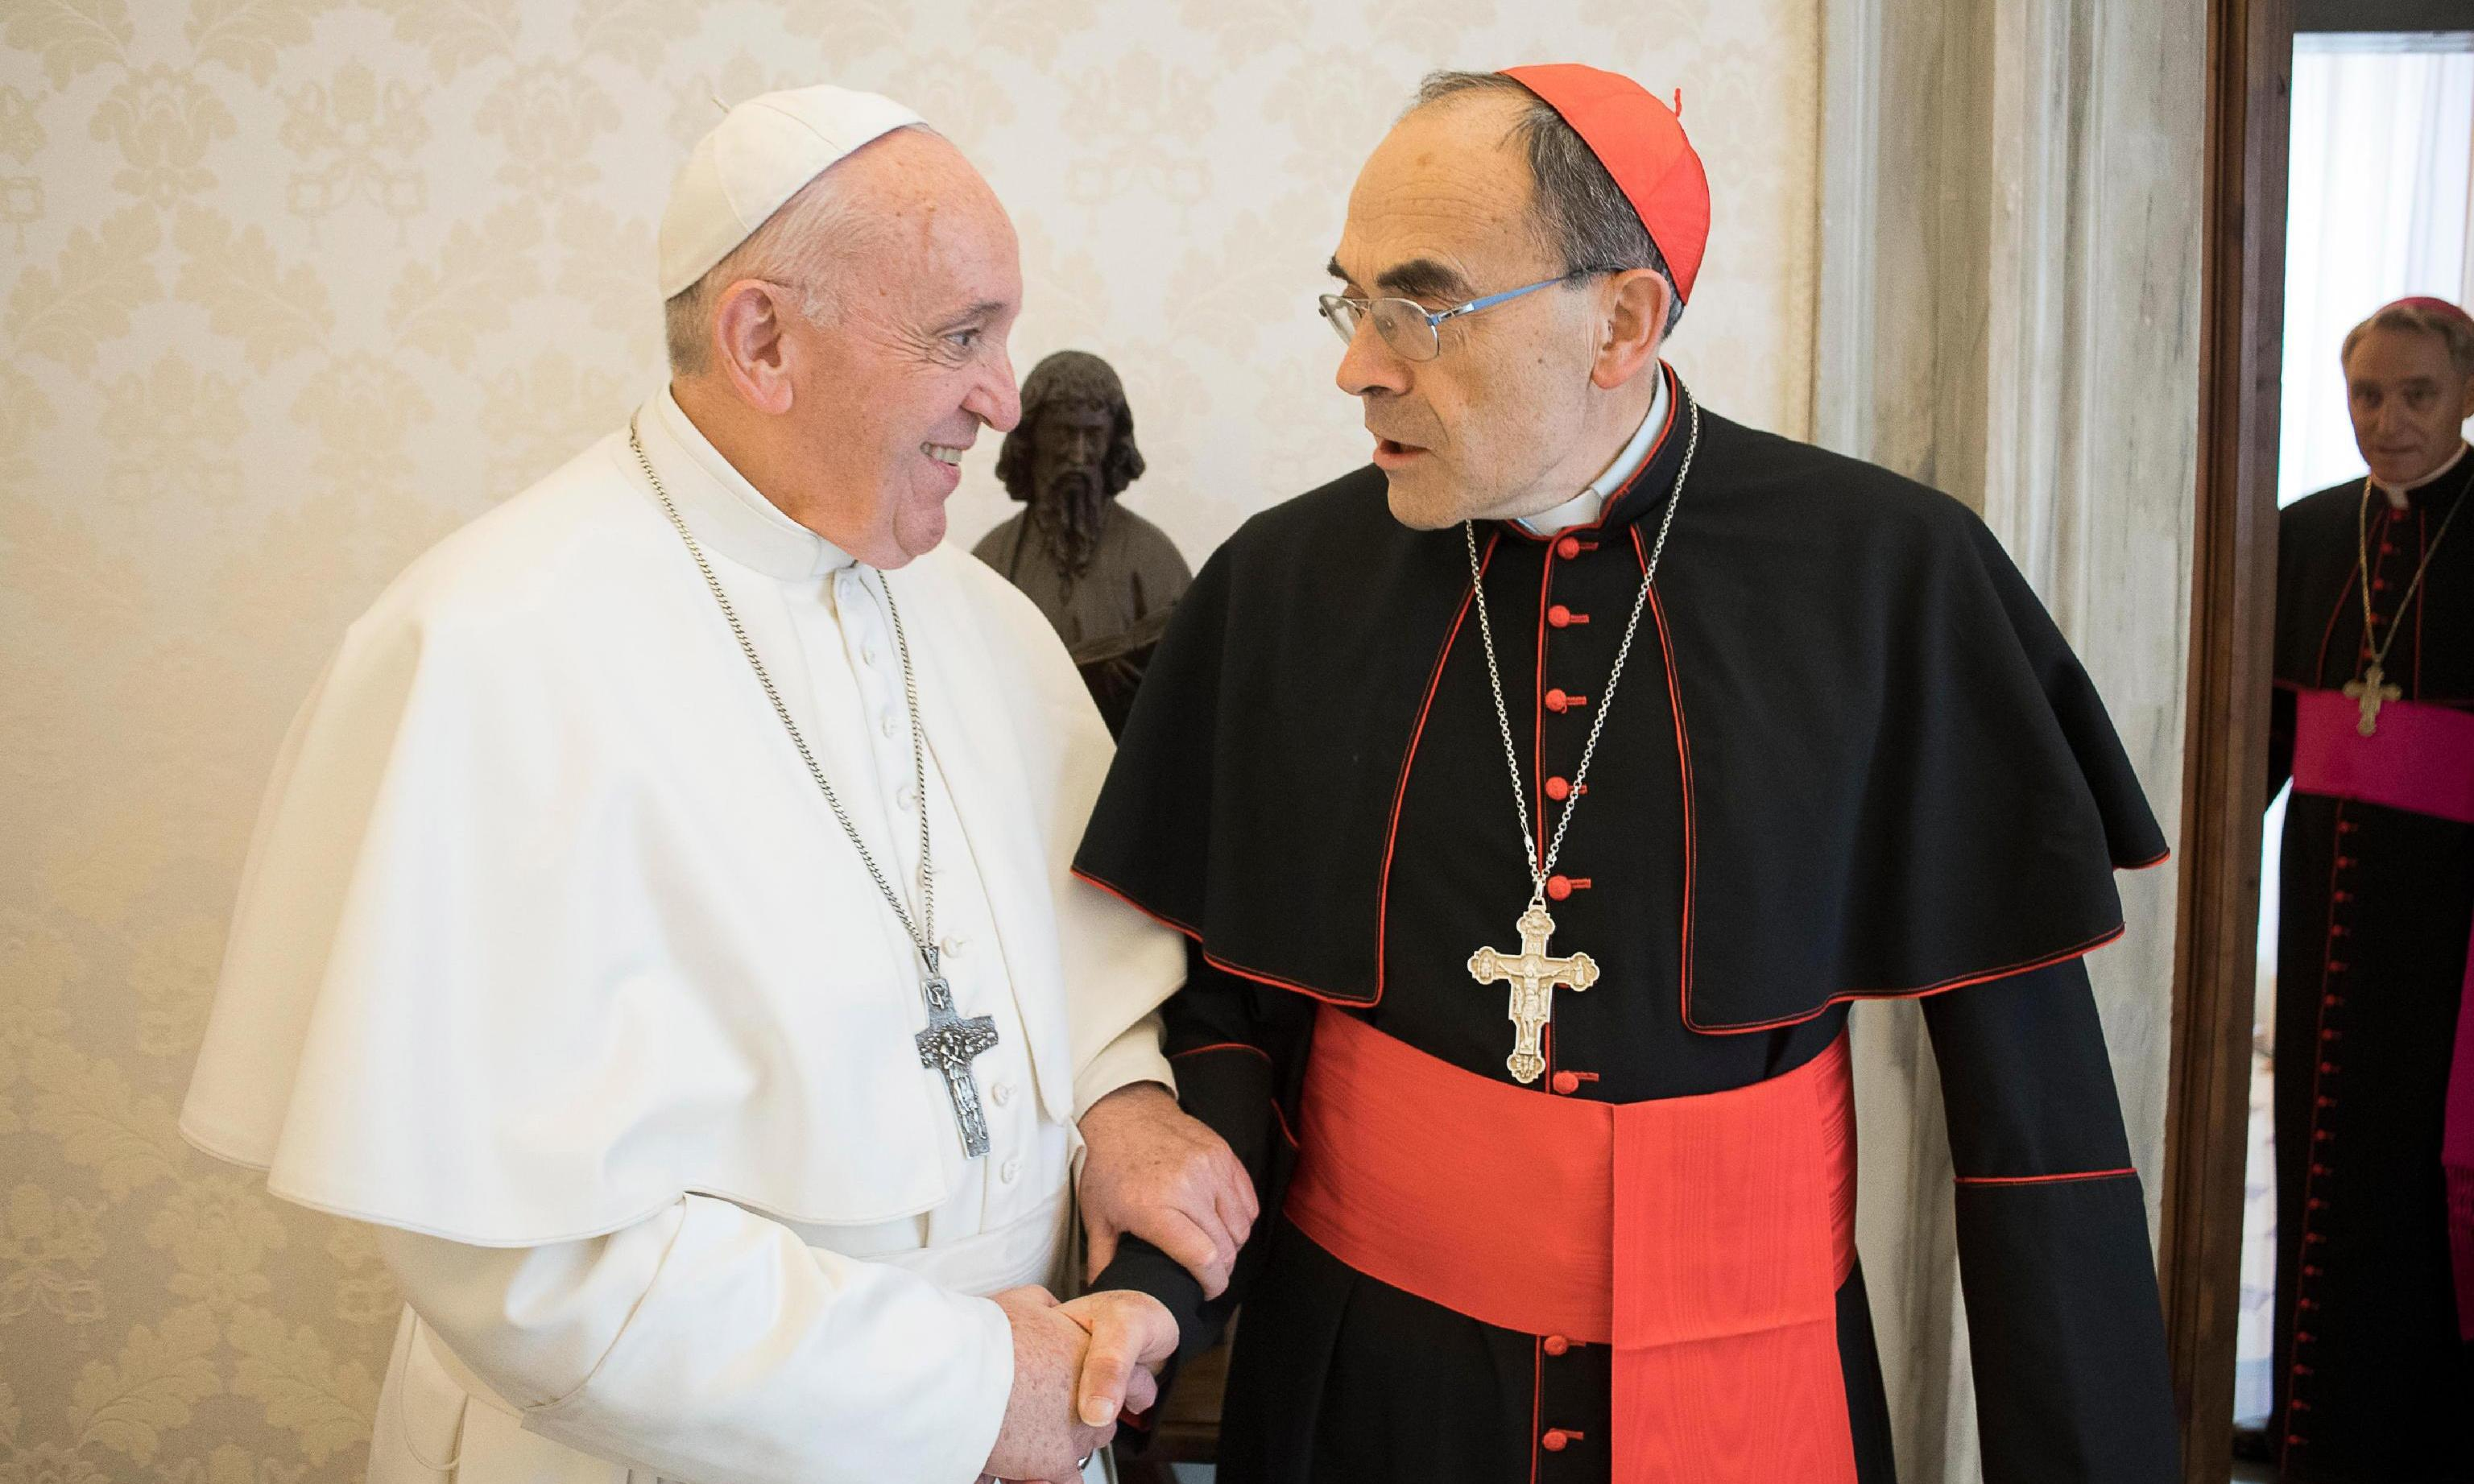 Convicted French cardinal says pope has refused his resignation